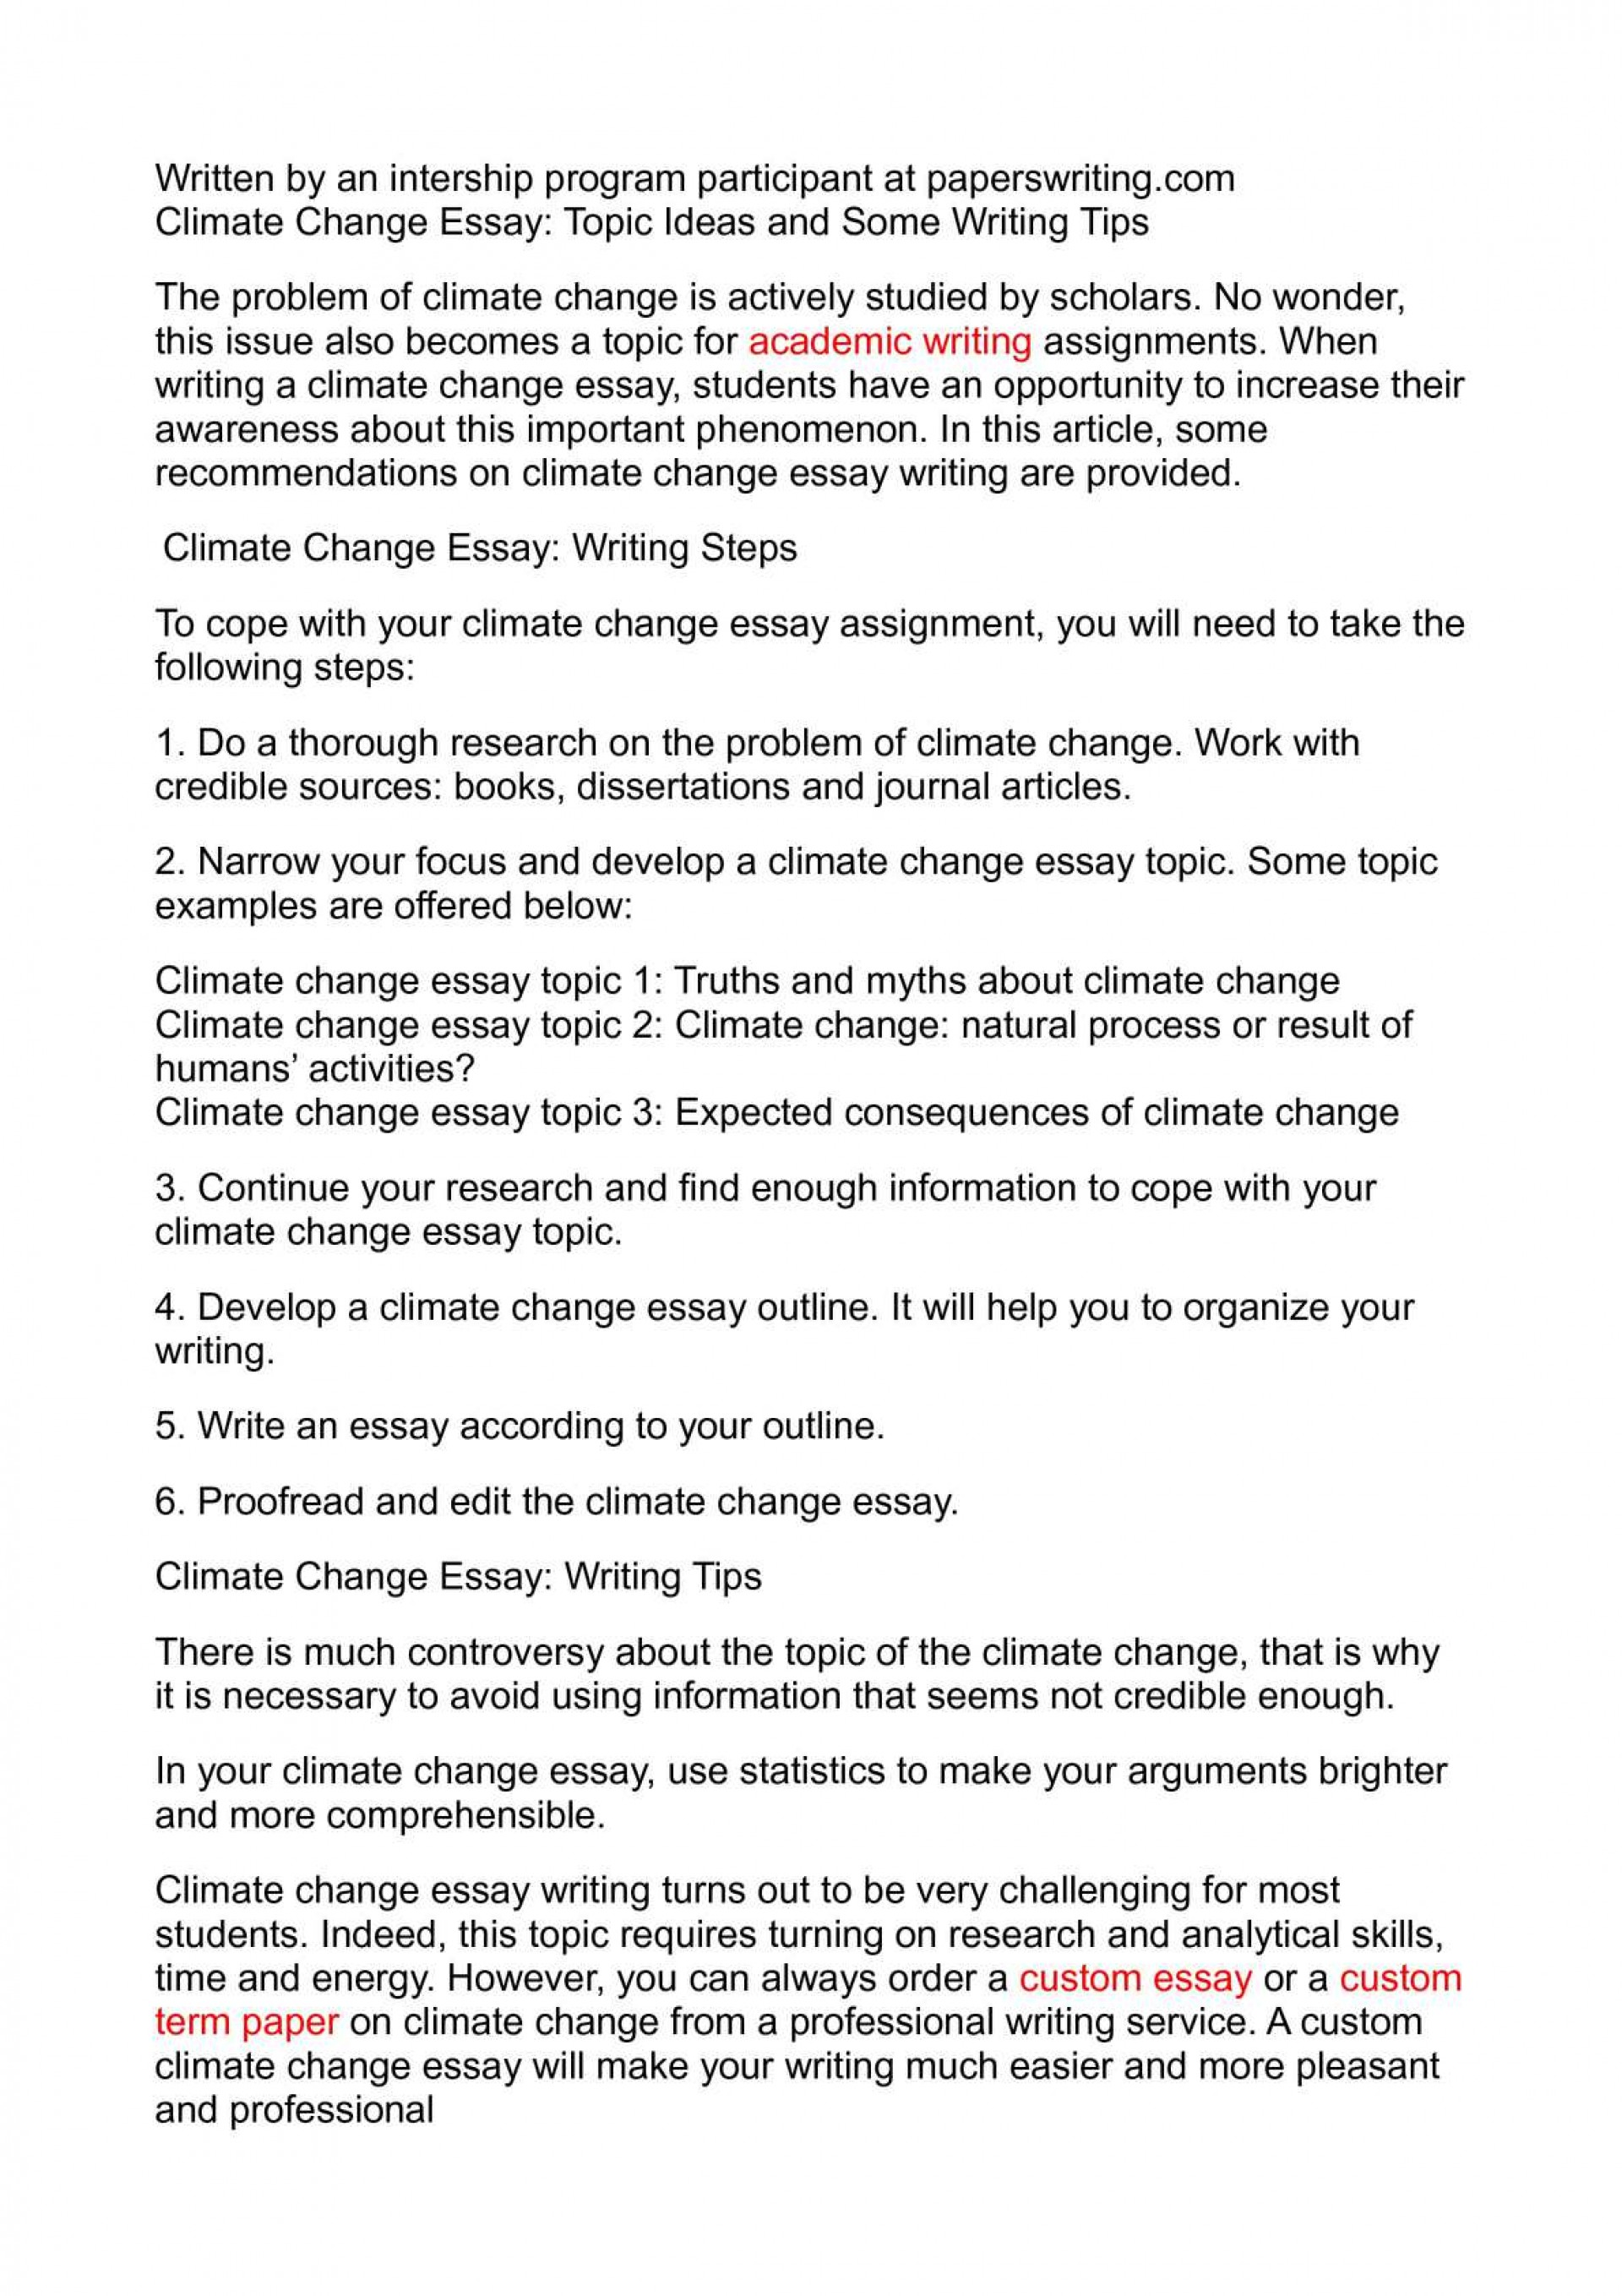 012 Climate Change Essay Topics Uncategorized Global Warming Topic Ways To St Oracleboss Research Paper20 Paper Unusual Ideas For High School Good 1920